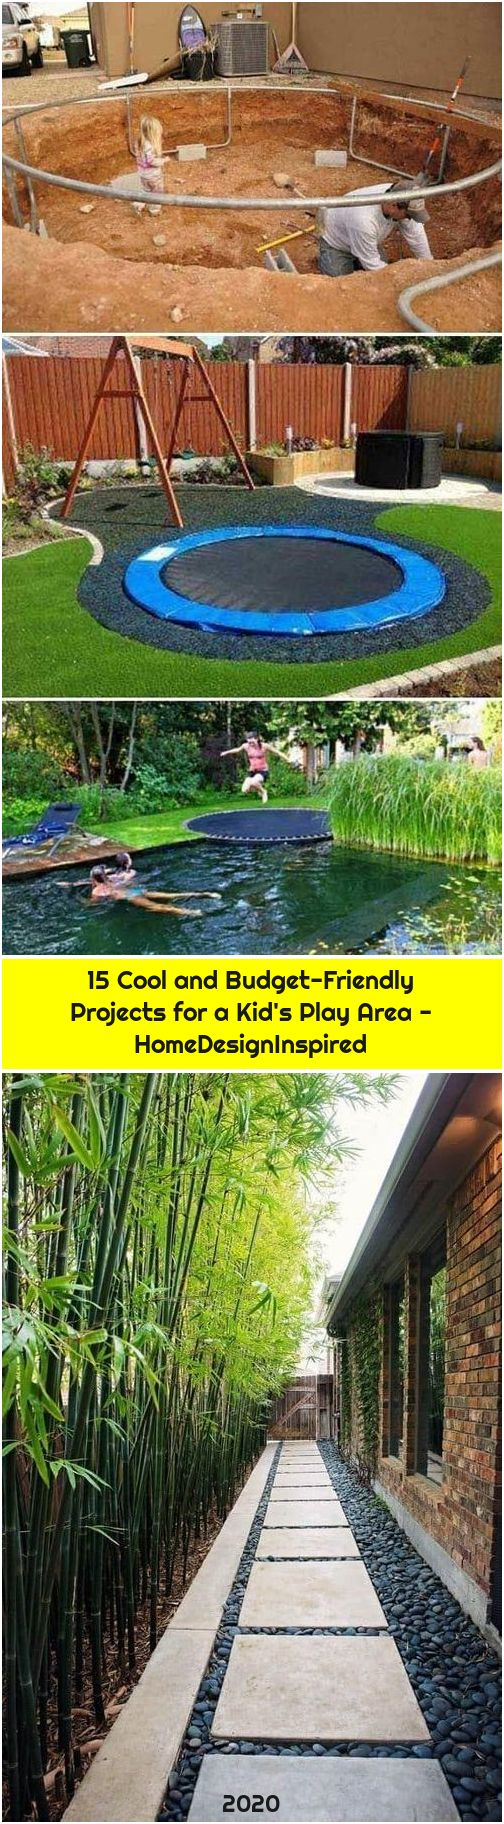 15 Cool and Budget-Friendly Projects for a Kid's Play Area - HomeDesignInspired